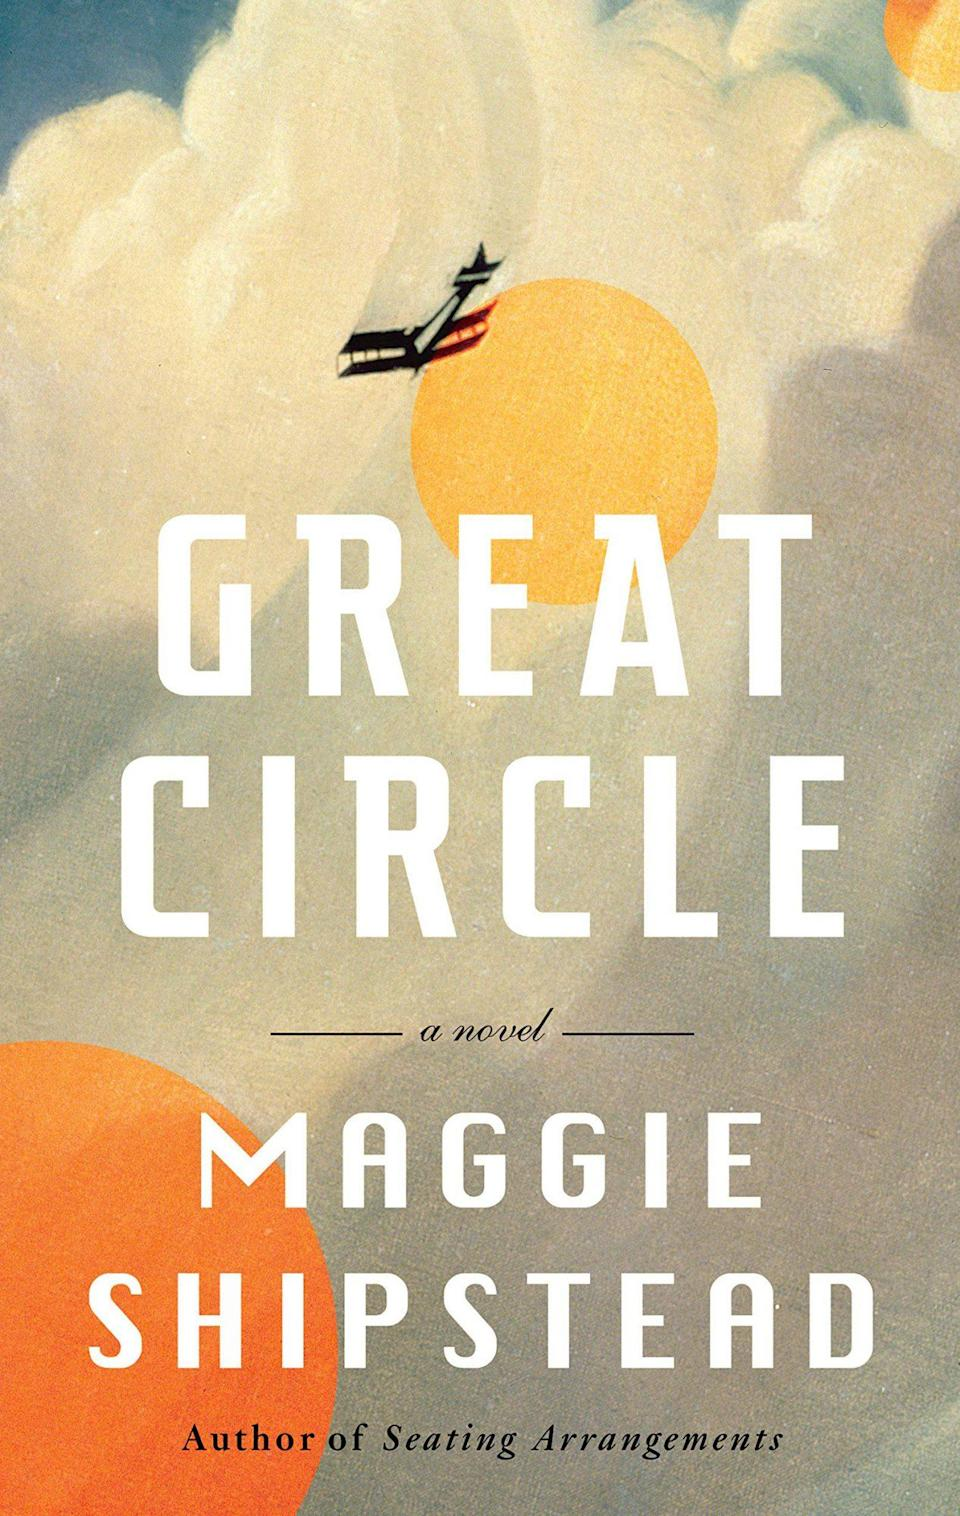 <p>A gargantuan of a novel at just over 600 pages, <span><em>Circle </em></span>weaves two together two story lines: the coming-of-age tale of fearless female pilot Marian Graves, saved from a sinking ocean liner in 1914 and eventually lost forever attempting a record-breaking flight around the world, and the making of a movie about her life in current-day Hollywood. It's a feat of story in every sense. (May 4)</p>